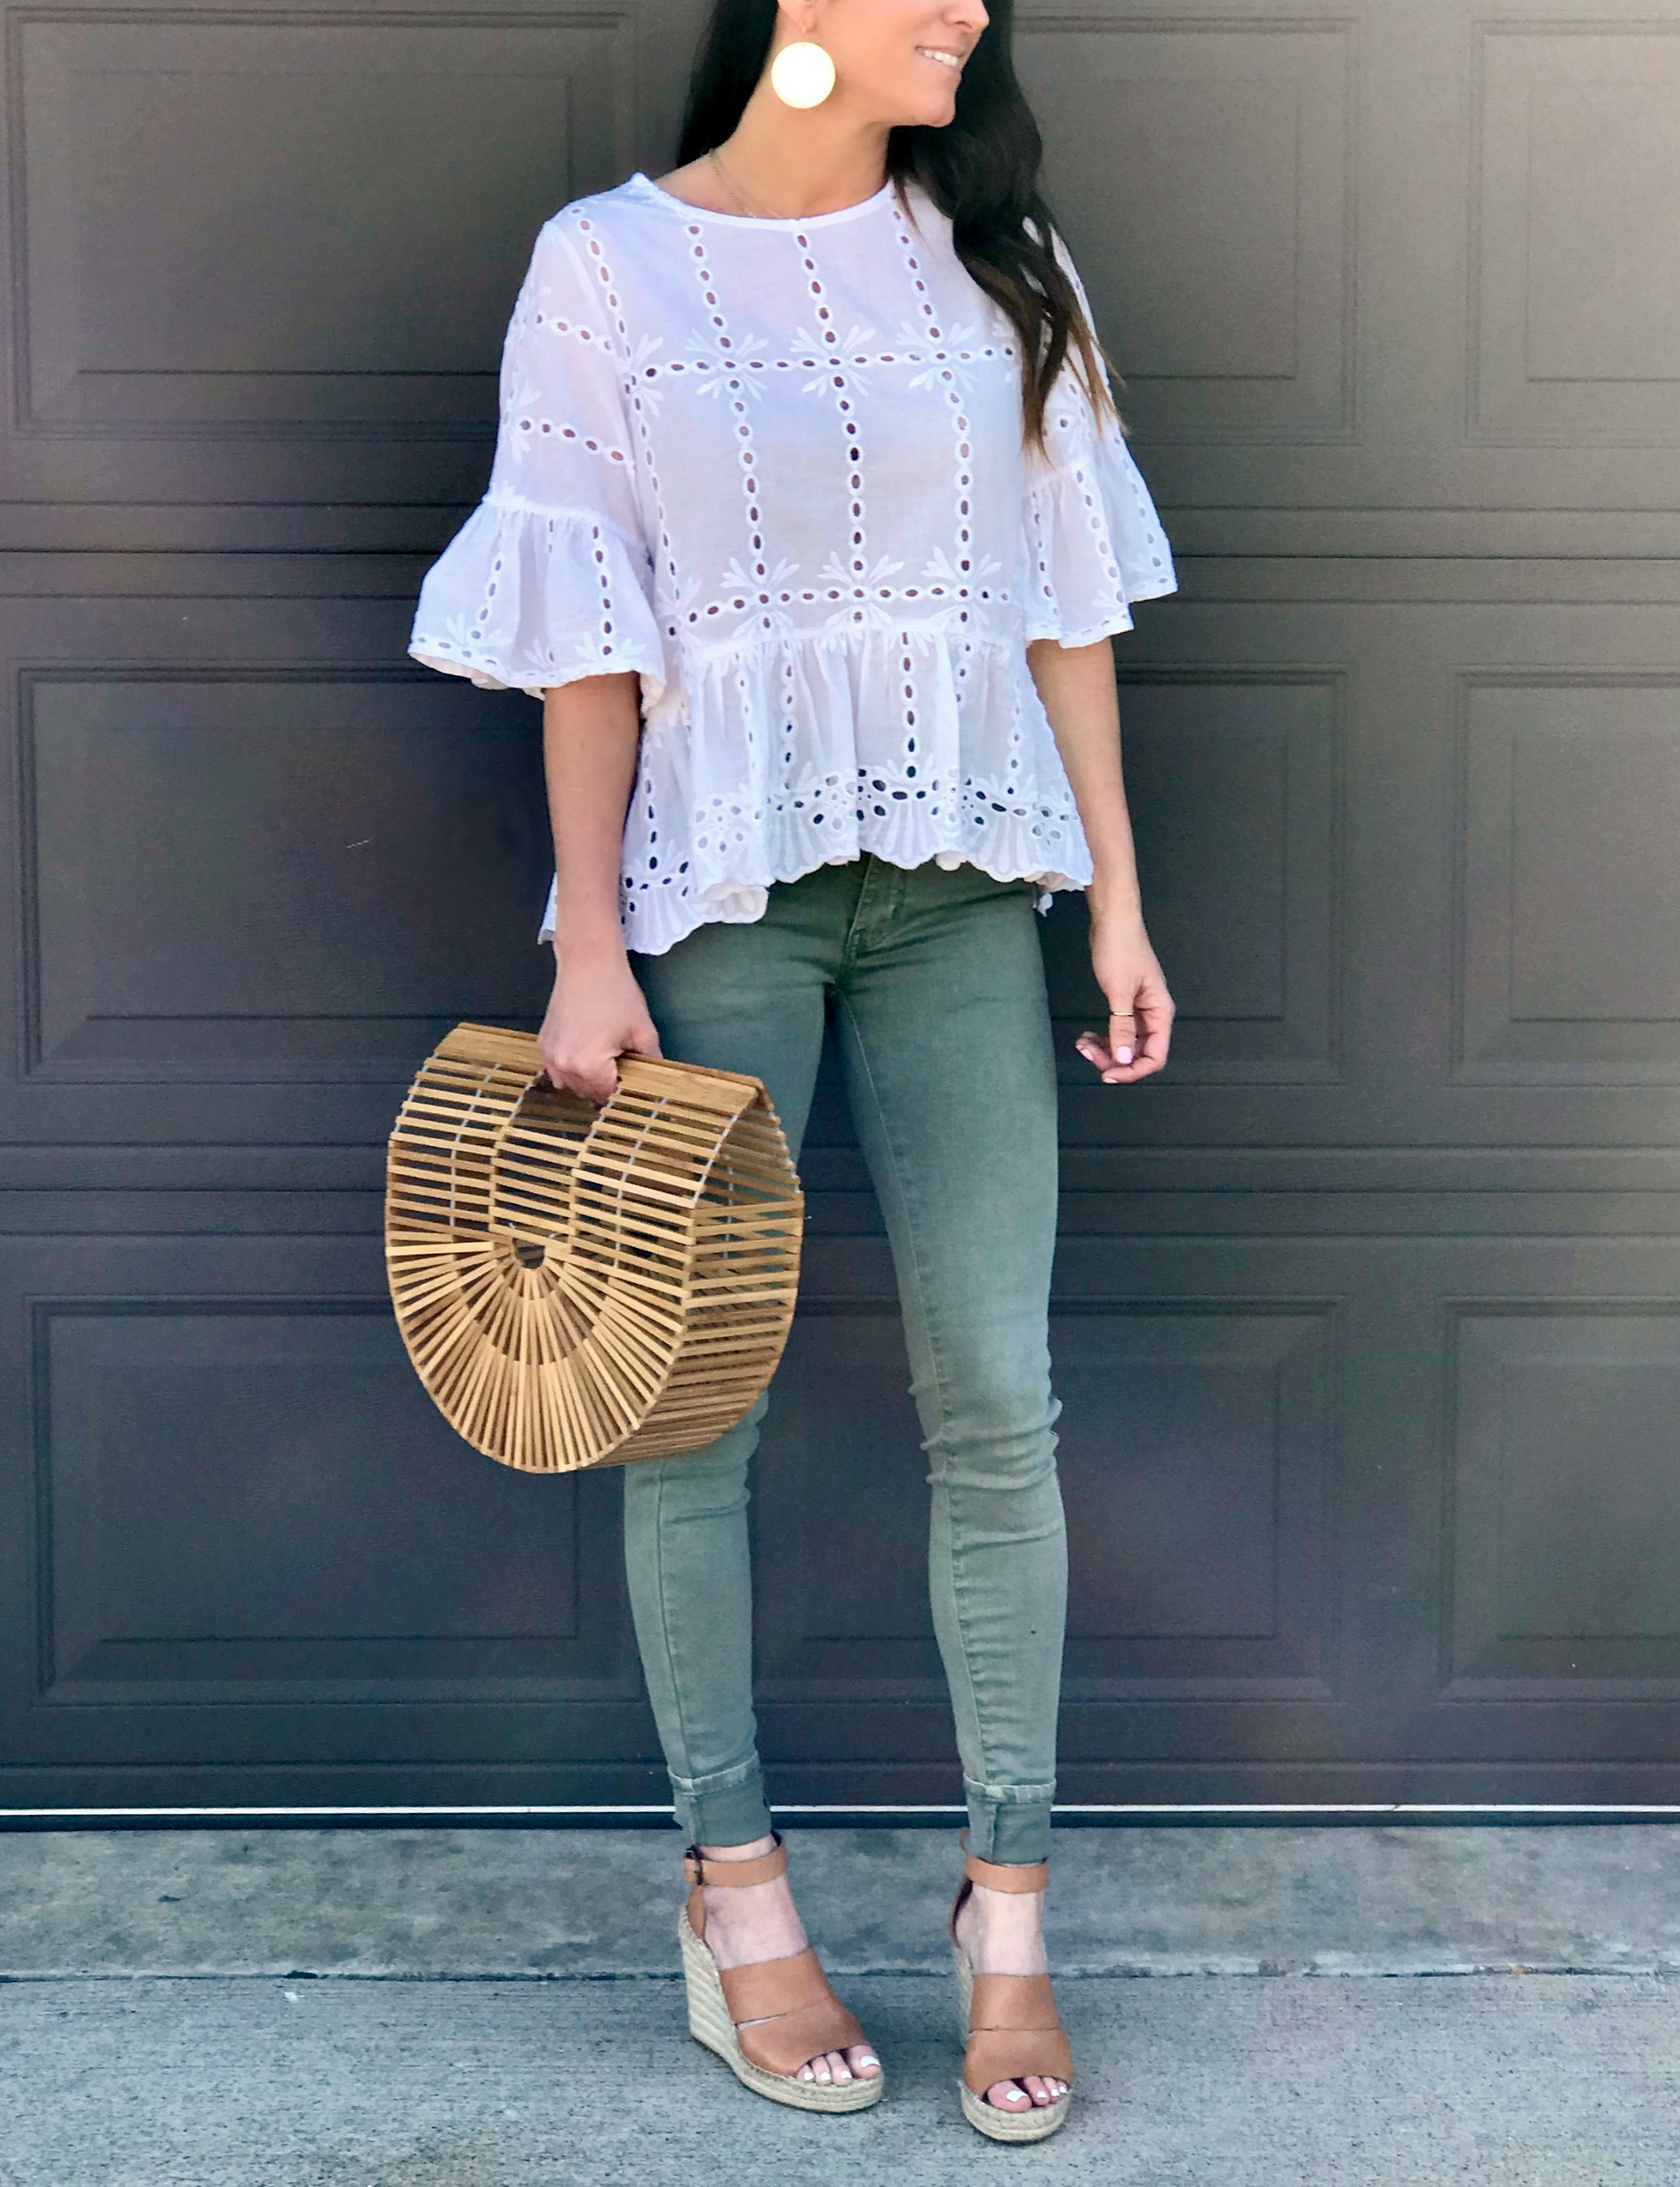 Green Pants, wedges, spring outfit